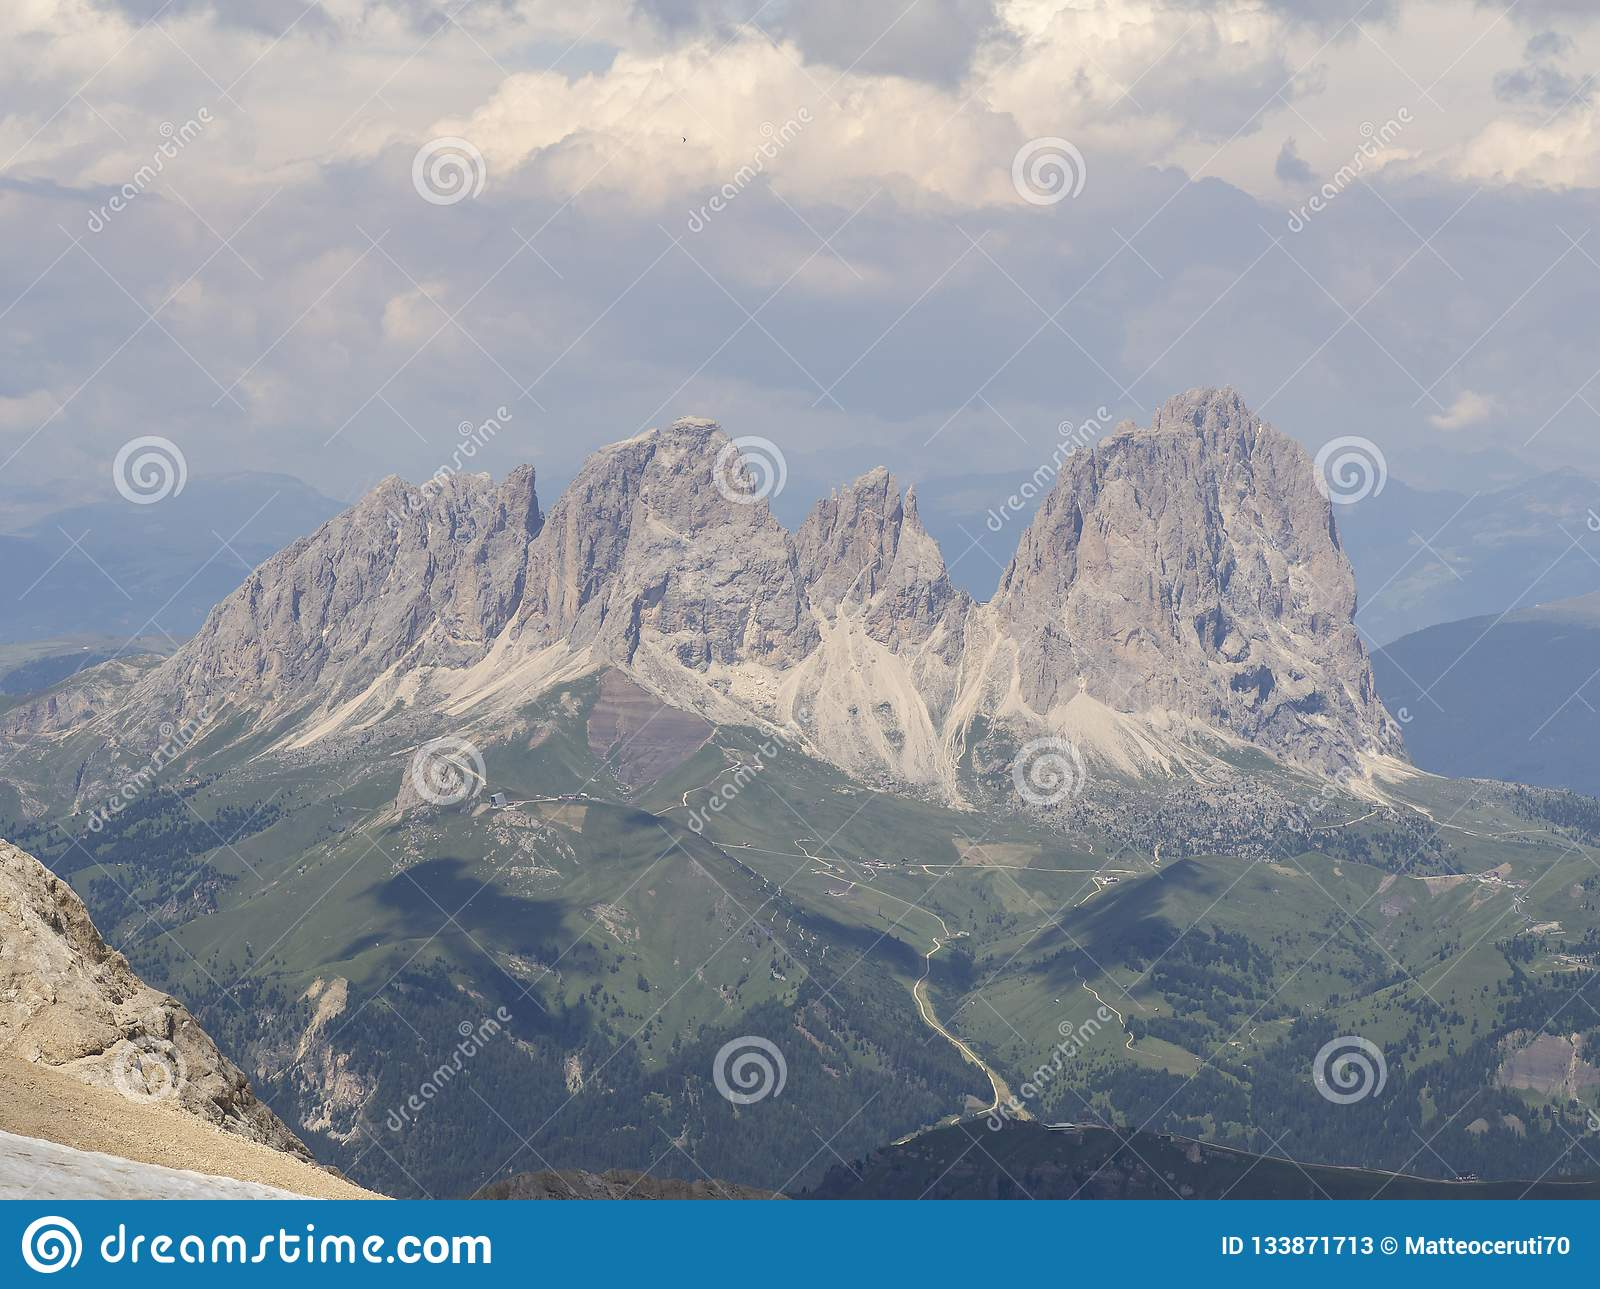 Amazing landscape at the Dolomites in Italy. View at Langkofel Sassolungo Group from Marmolada summit